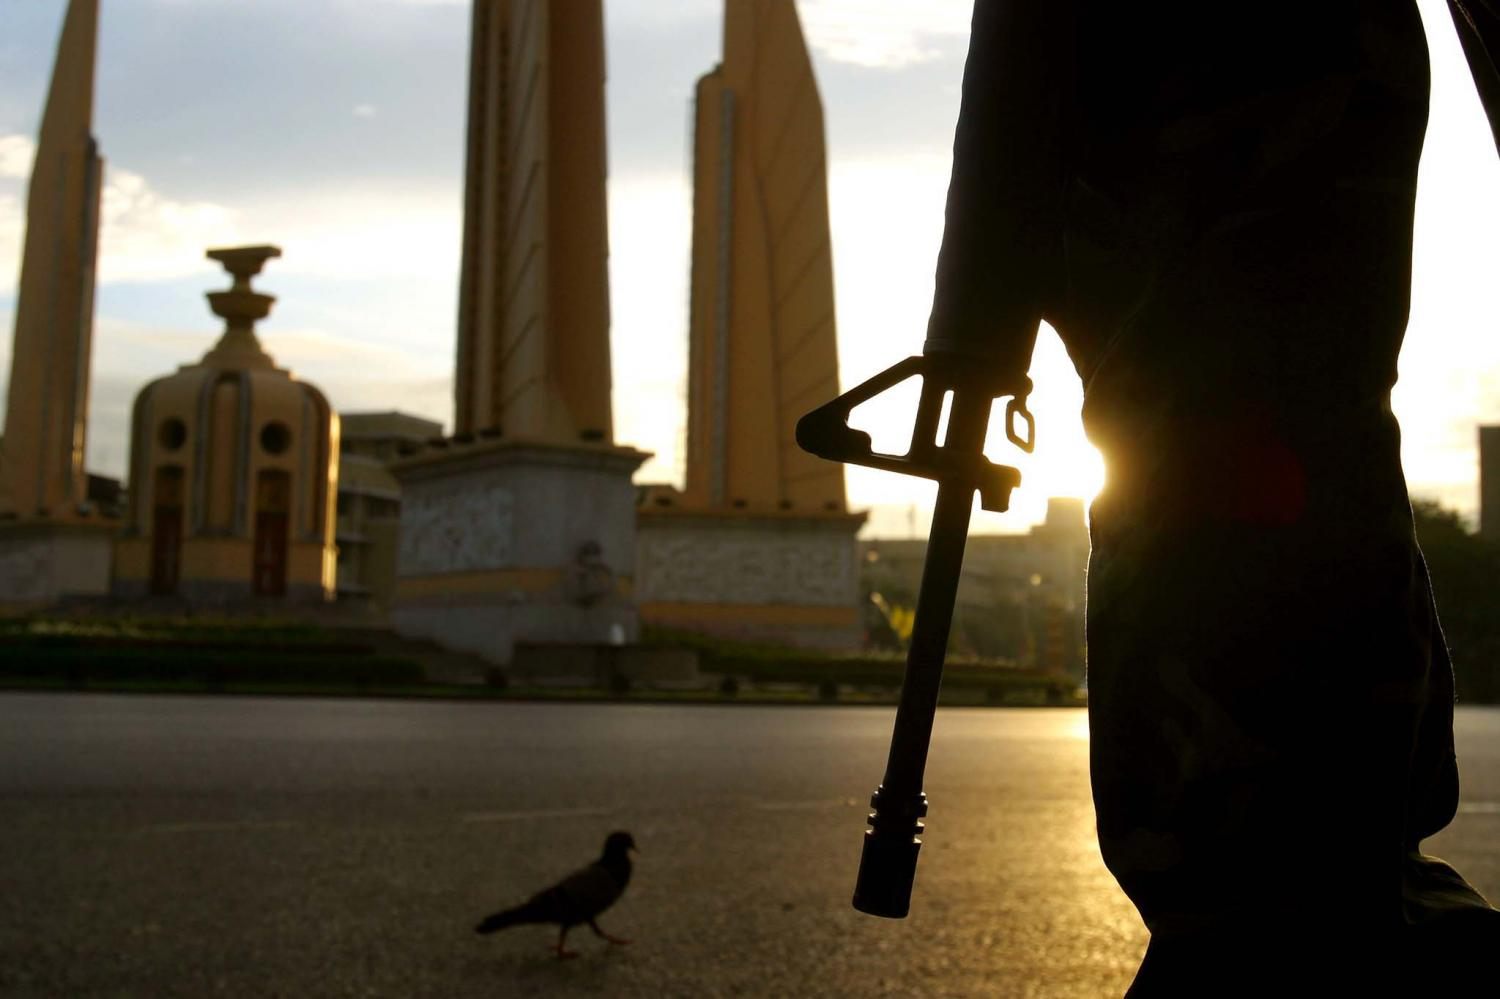 A soldier stands guard near the Democracy Monument on Sept 22, 2006 following the military coup on Sept 19 of that year. The Future Forward Party last week proposed a Lower House panel be set up to explore mechanisms to prevent coups. POST TODAY